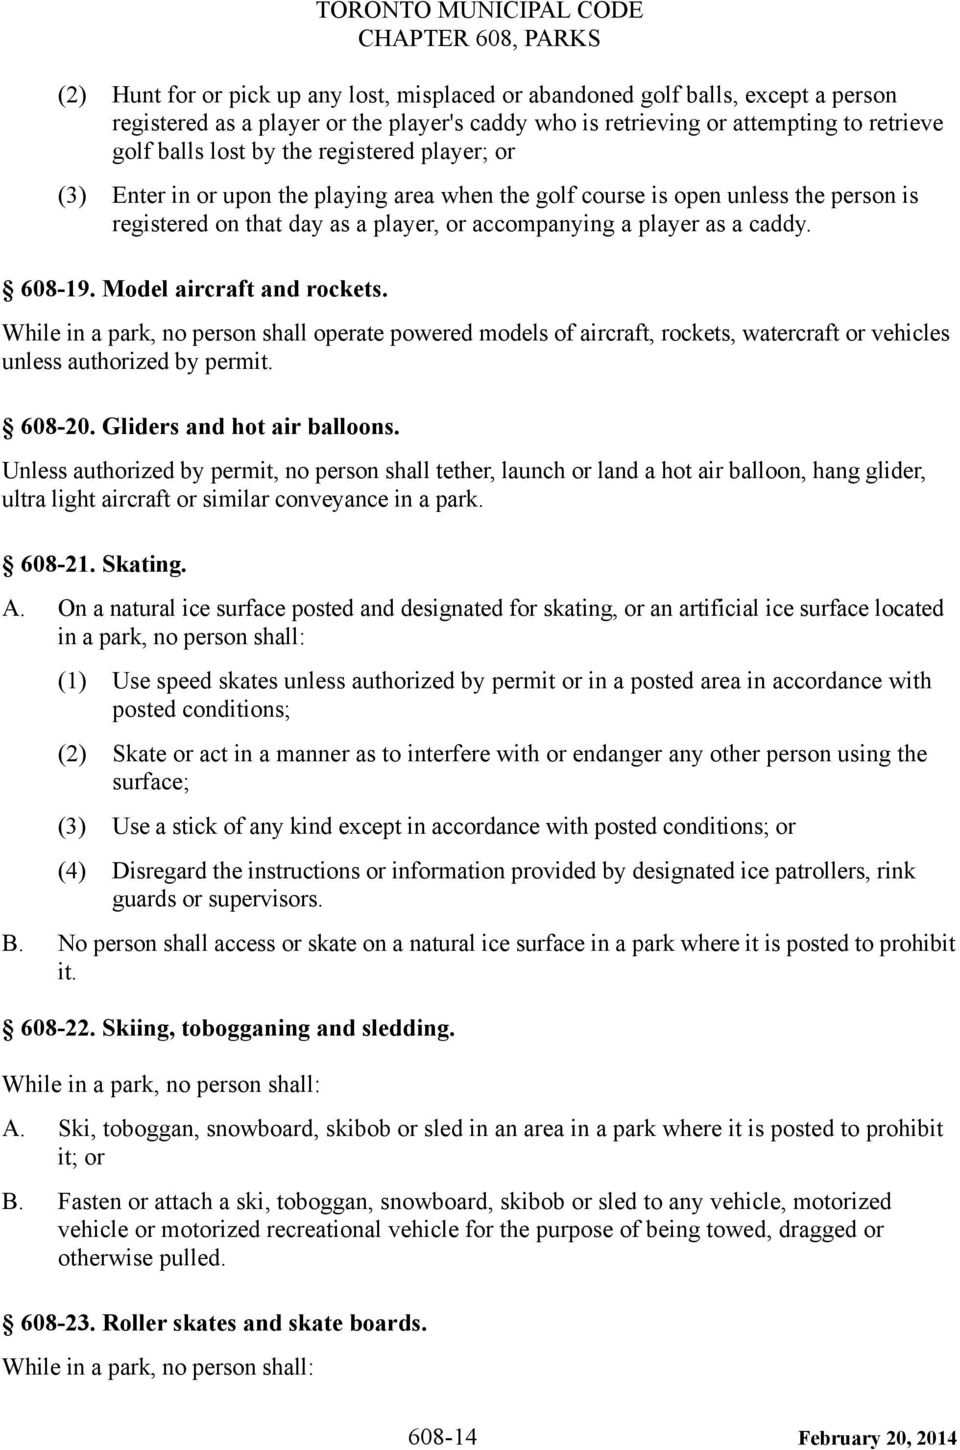 Model aircraft and rockets. While in a park, no person shall operate powered models of aircraft, rockets, watercraft or vehicles unless authorized by permit. 608-20. Gliders and hot air balloons.